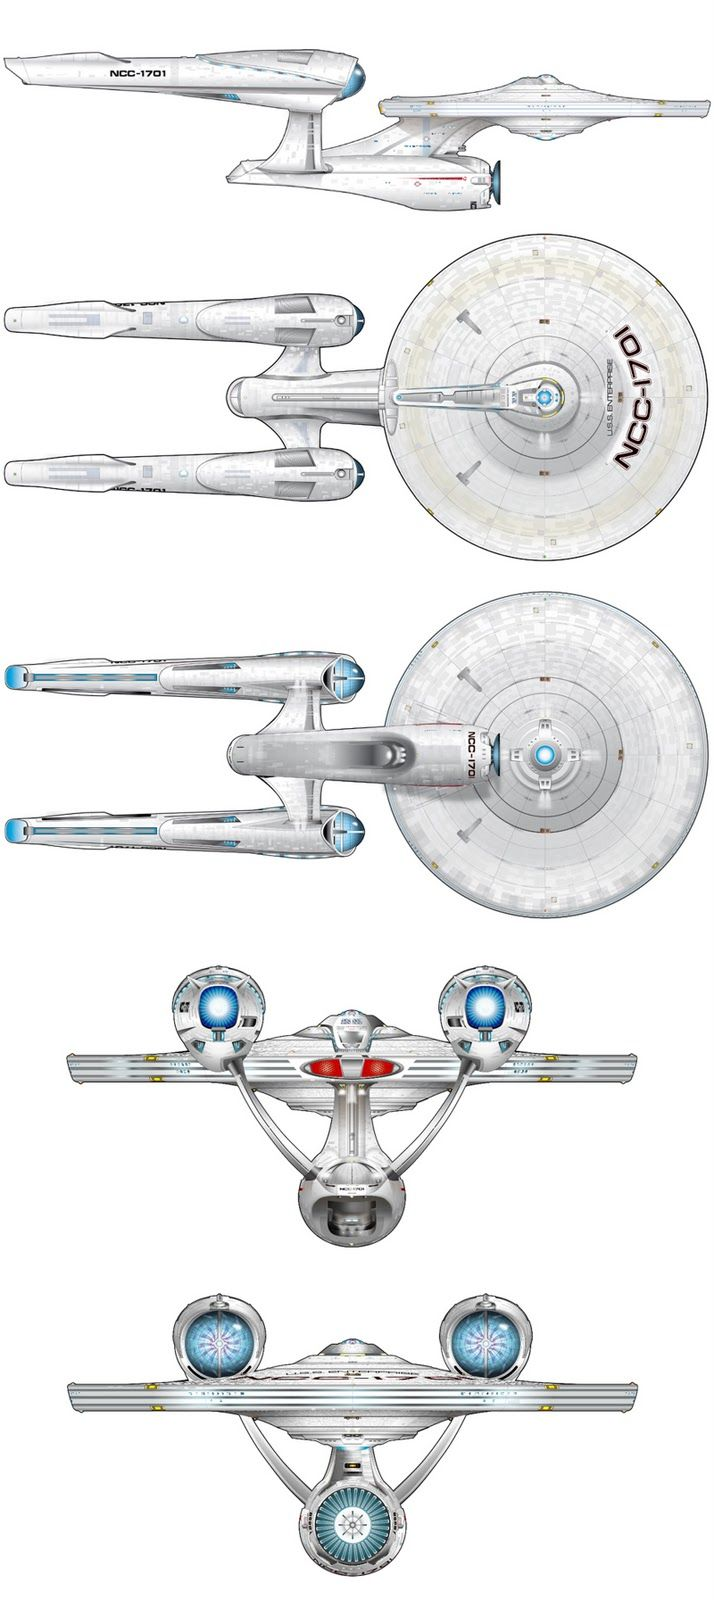 New-USS-Enterprise-Blueprints.jpg (714×1600)                                                                                                                                                                                 More